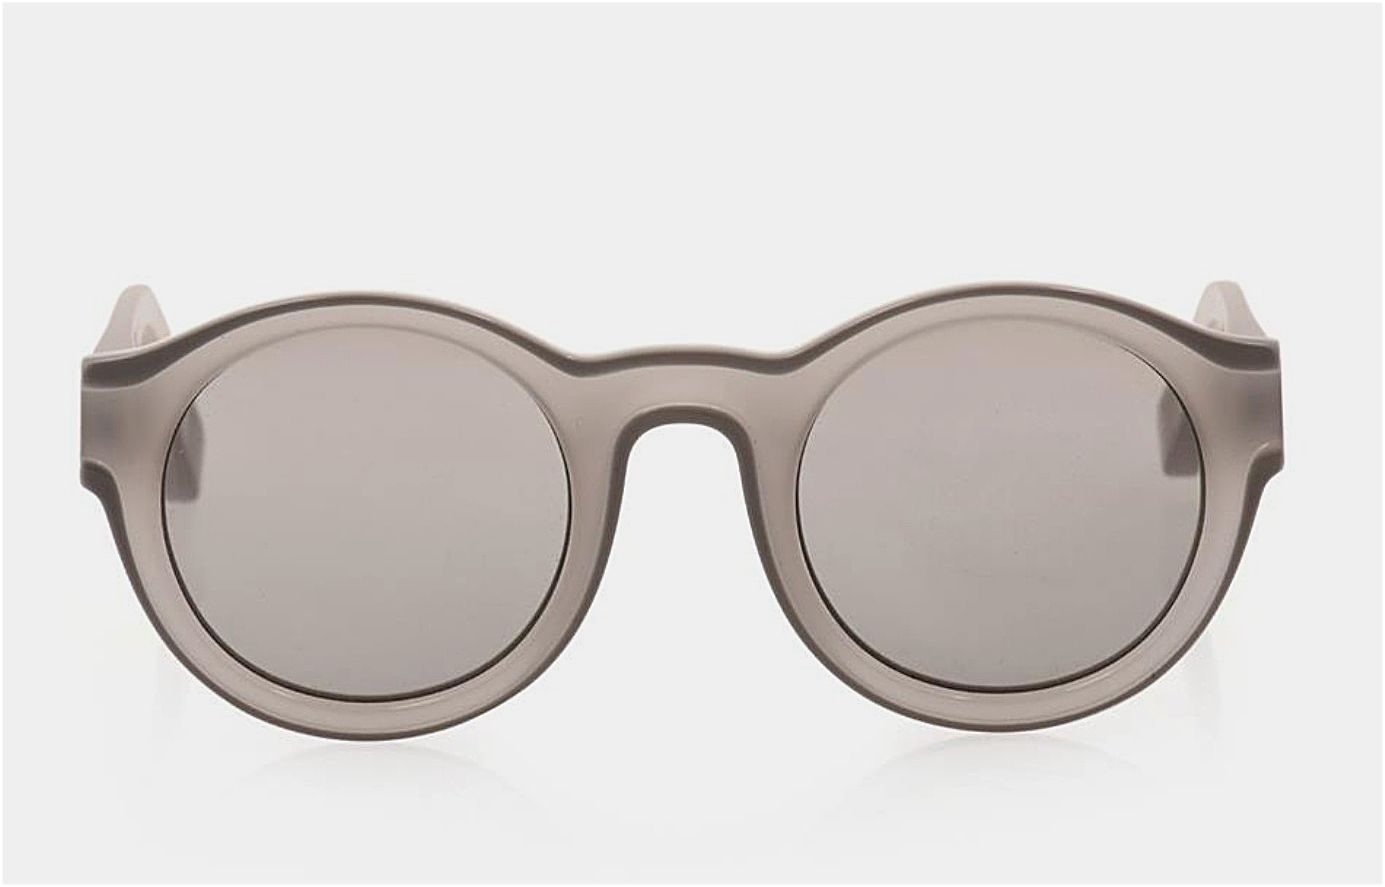 00ebbe99b97 SUNGLASSES-Mykita X Maison Martin Margiela Sunglasses in Gray for Men - Lyst  Lyst